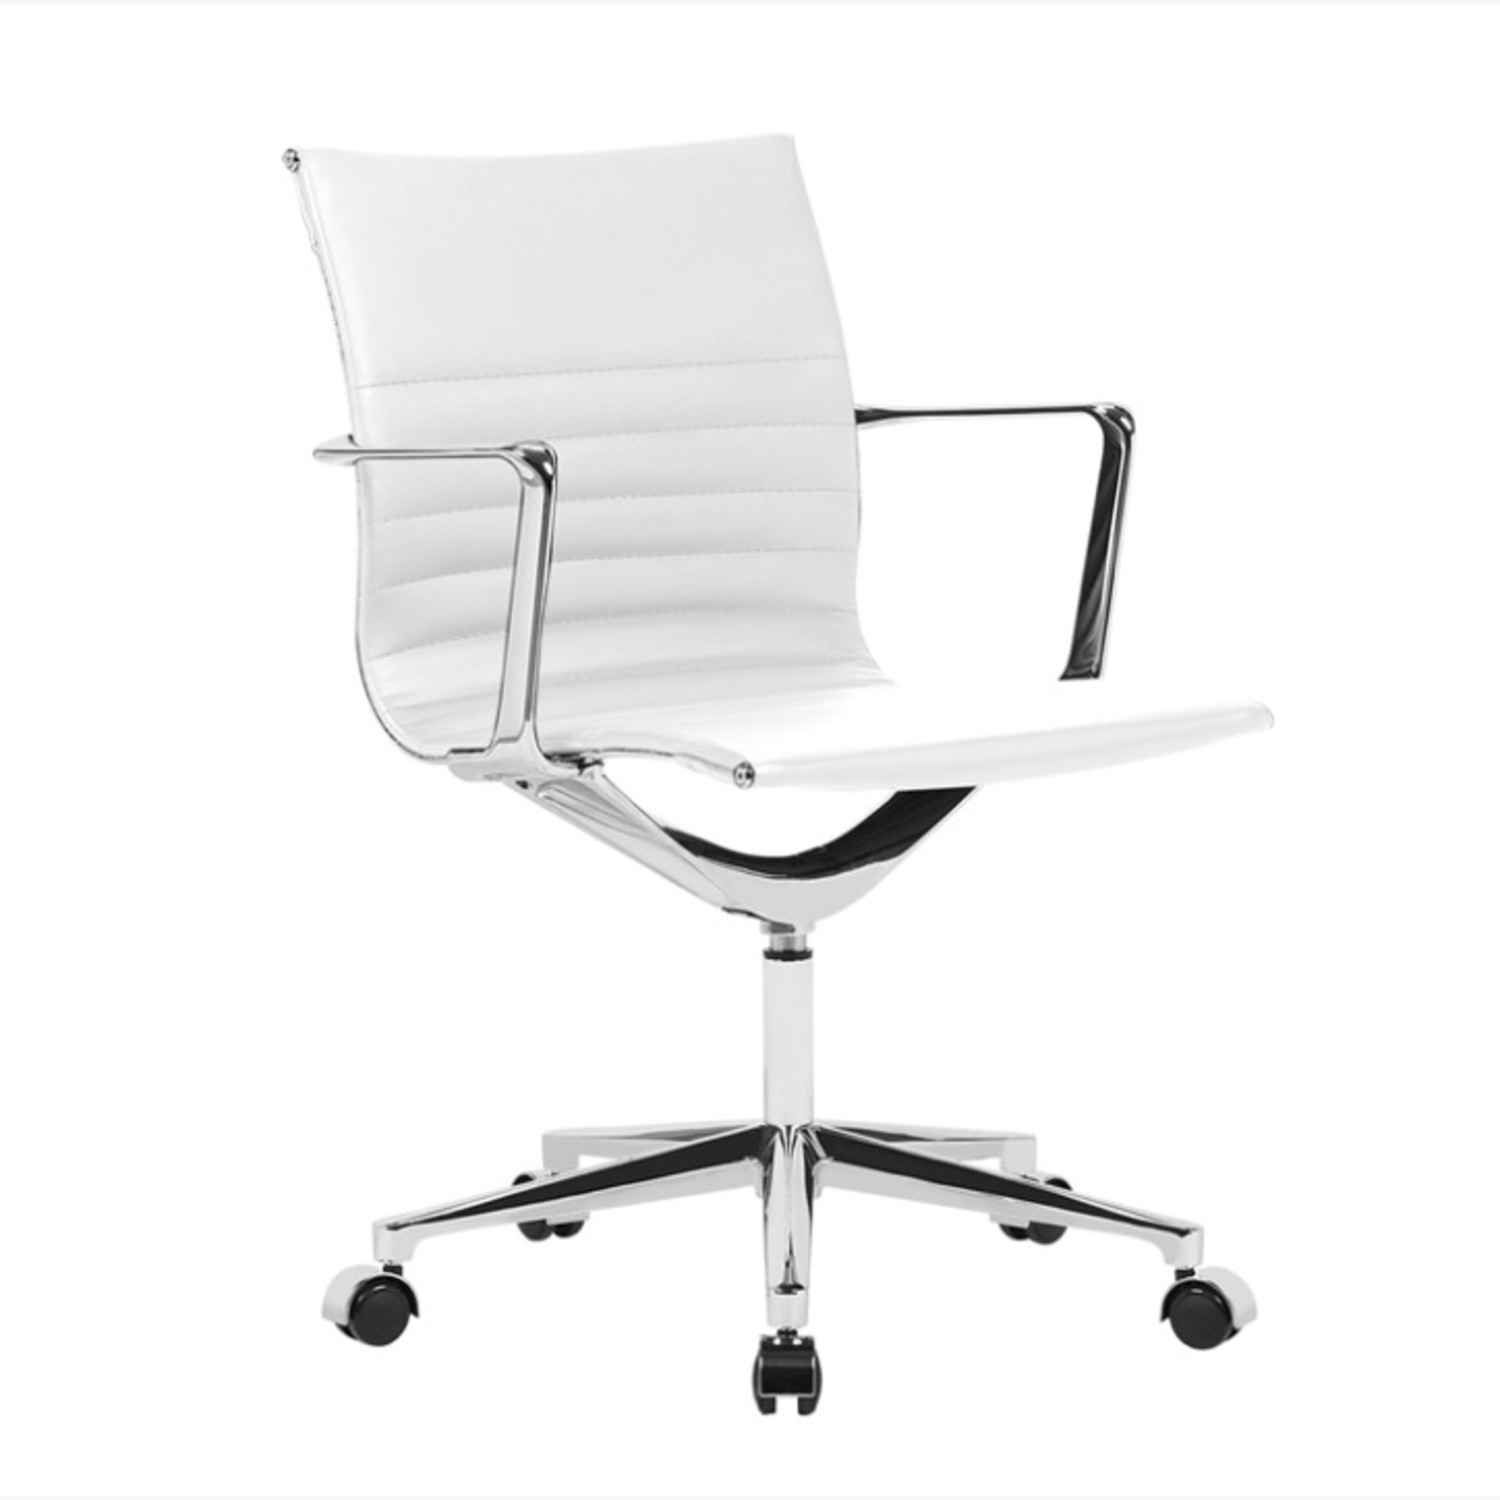 Office Chair In Mid Back W/ White Leatherette - image-0